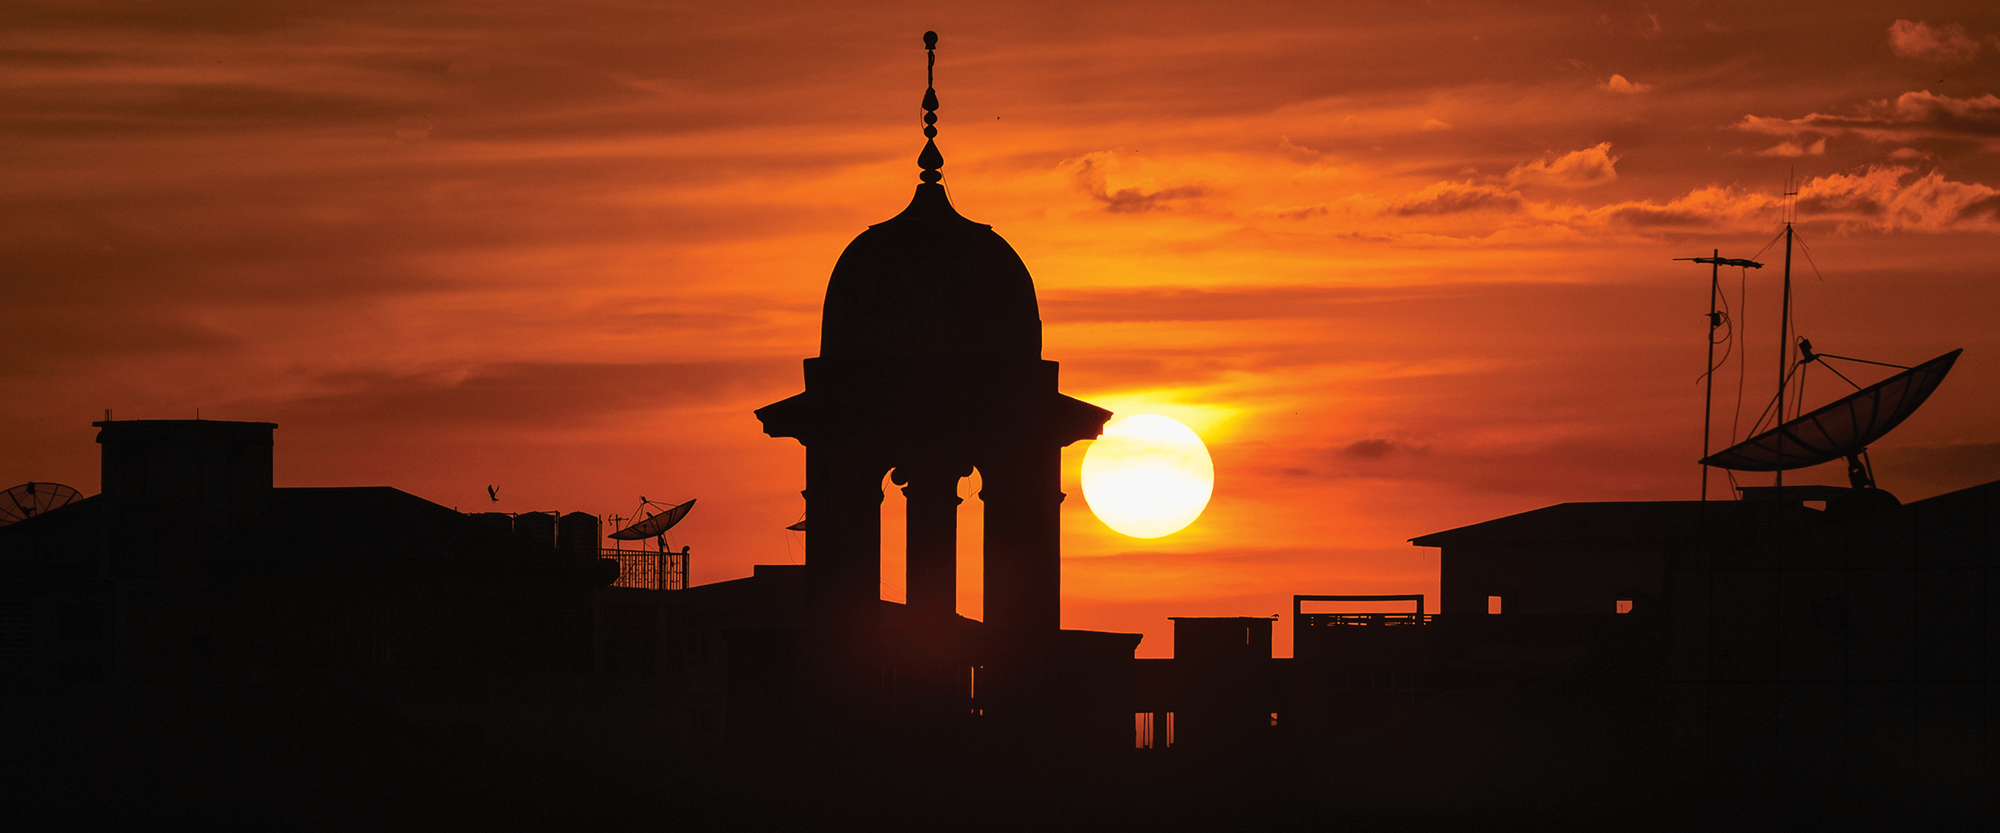 Sunset in Middle Eastern village